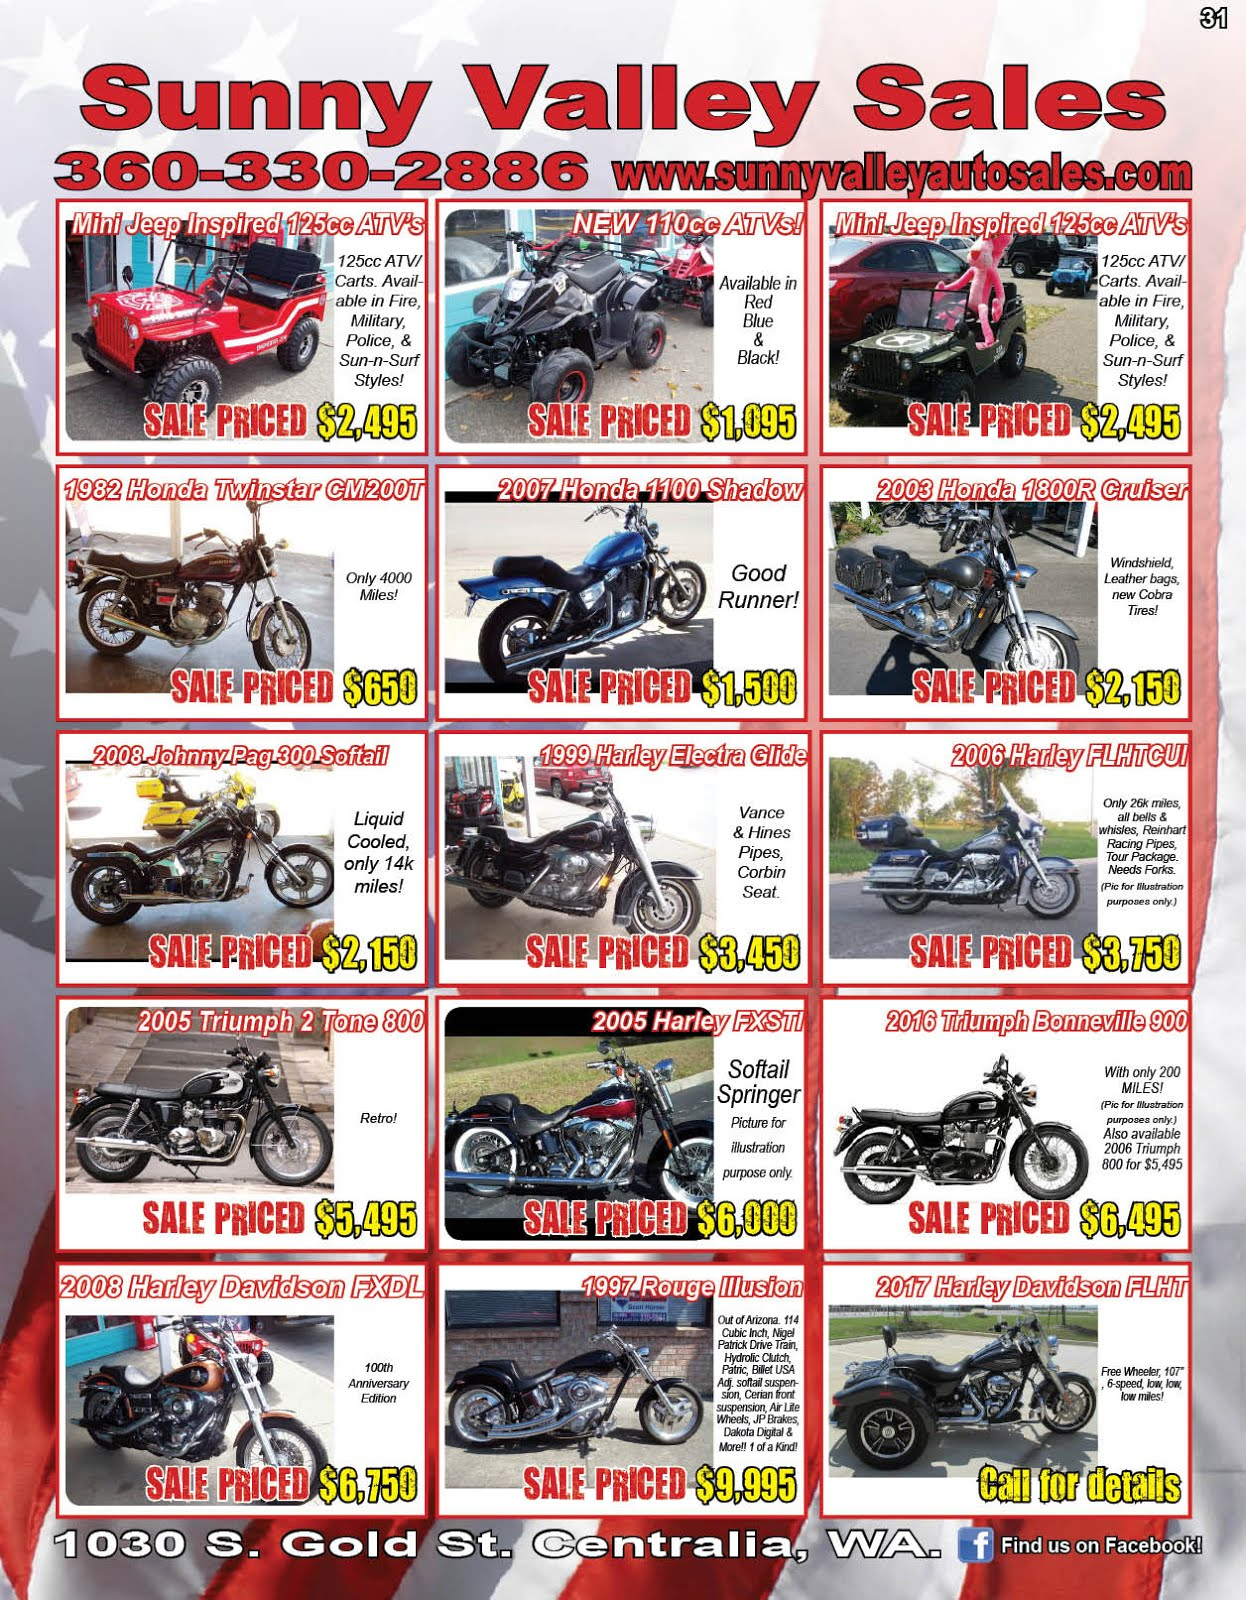 Sunny Valley Sales New Mini Jeep Carts & ATV's,Used Motorcycles & More!!